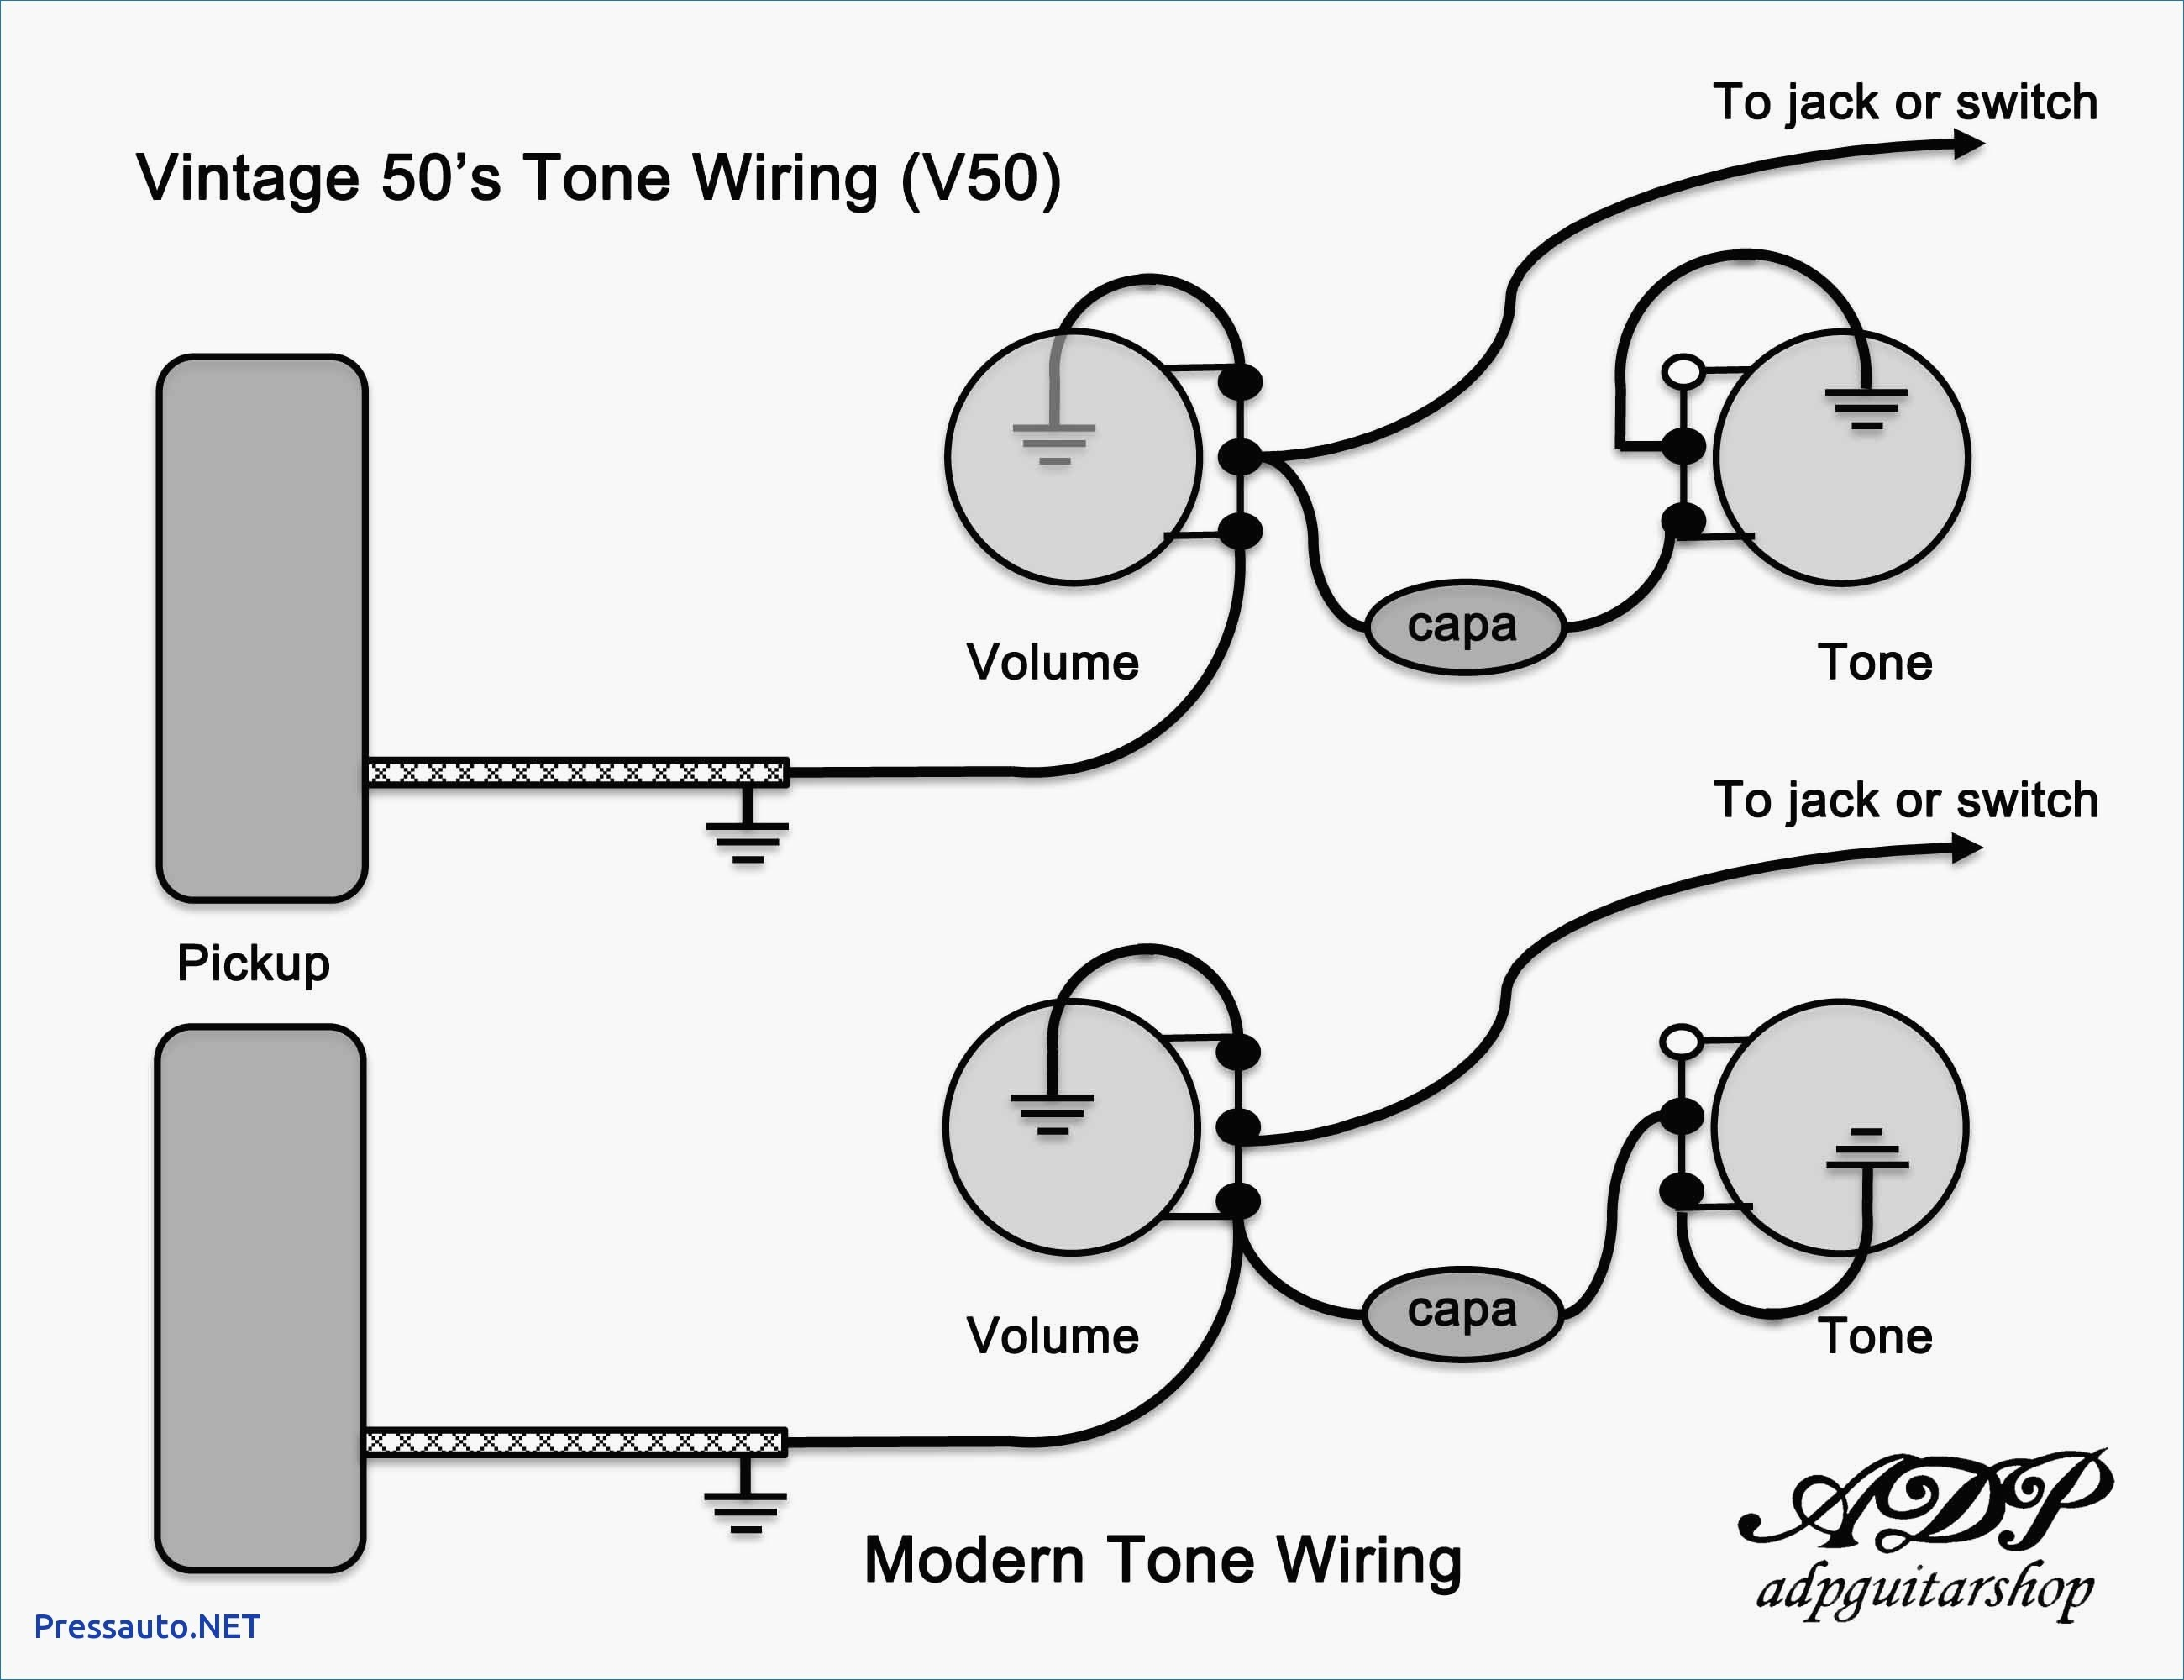 50s Les Paul Wiring Diagram Les Paul Guitar Drawing at Getdrawings Of 50s Les Paul Wiring Diagram